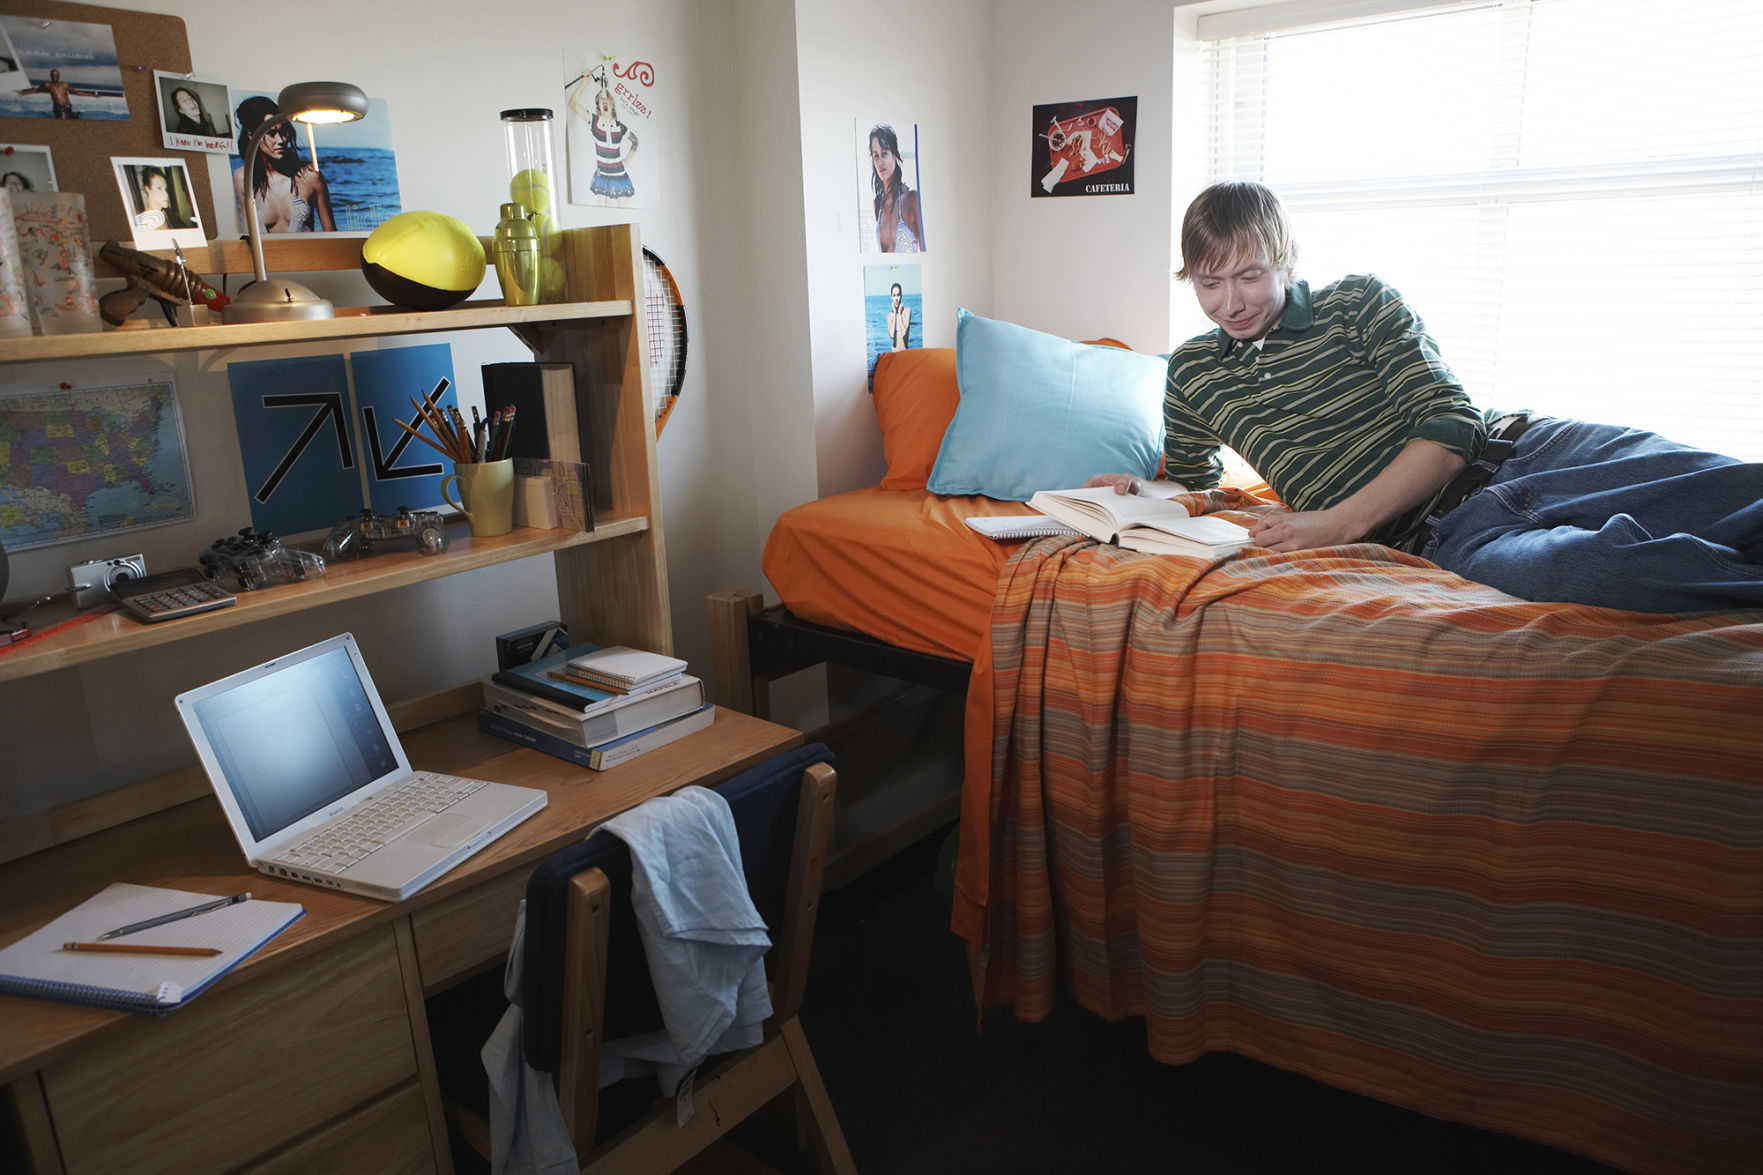 Dorm Decor: Making college a home away from home | Home ...